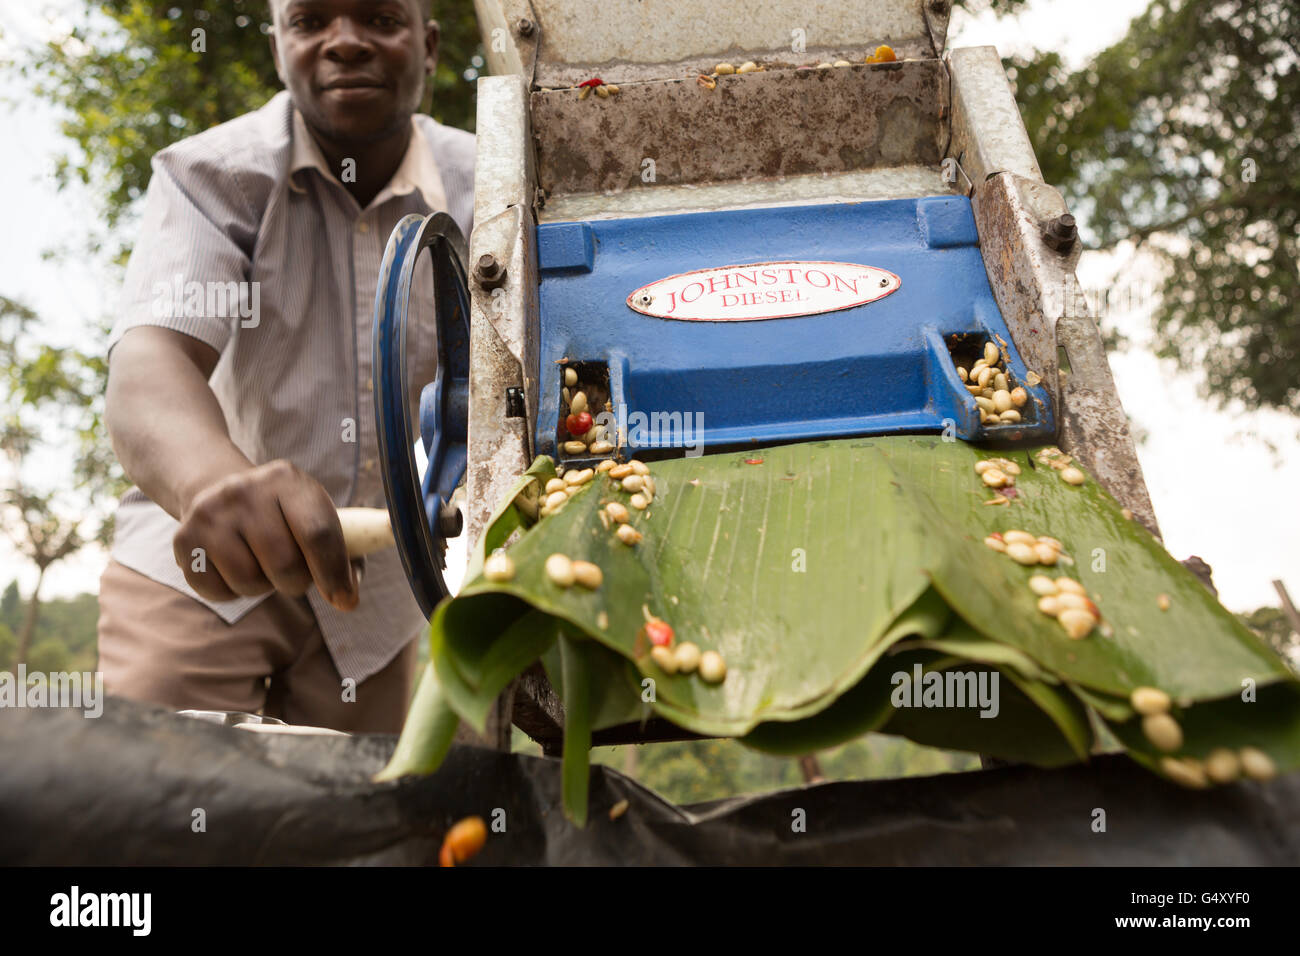 A farmer operates a mechanized coffee cherry pulper at a processing station in Kasese District, Uganda. - Stock Image